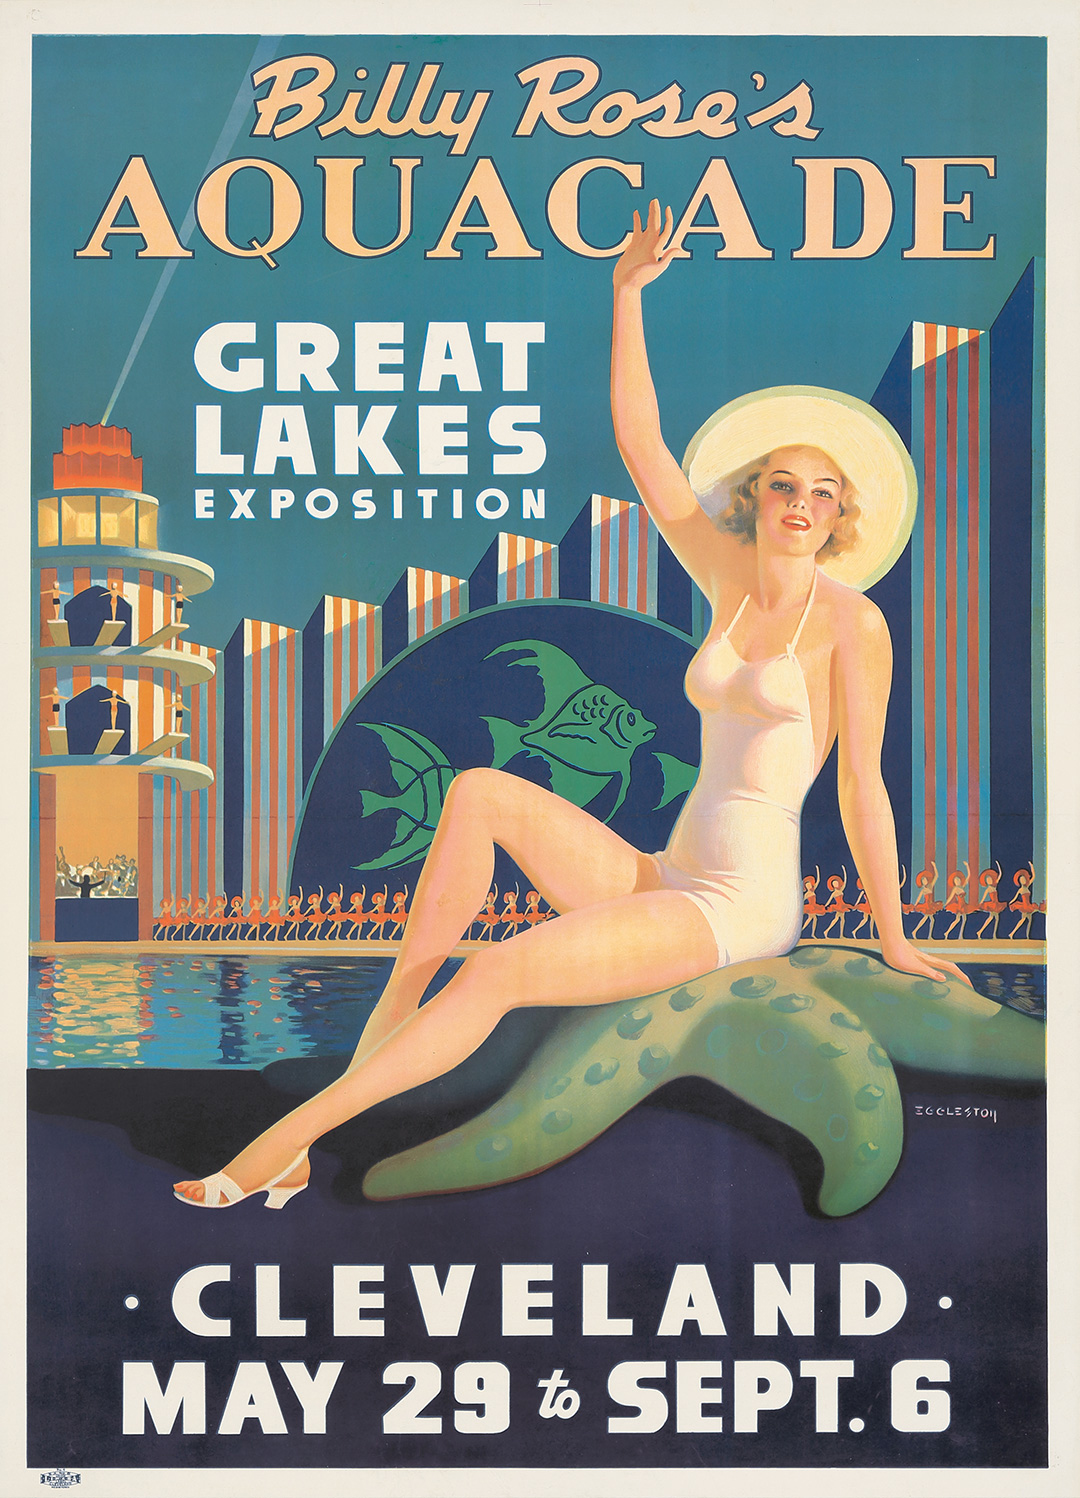 268. Billy Rose's Aquacade. 1937.